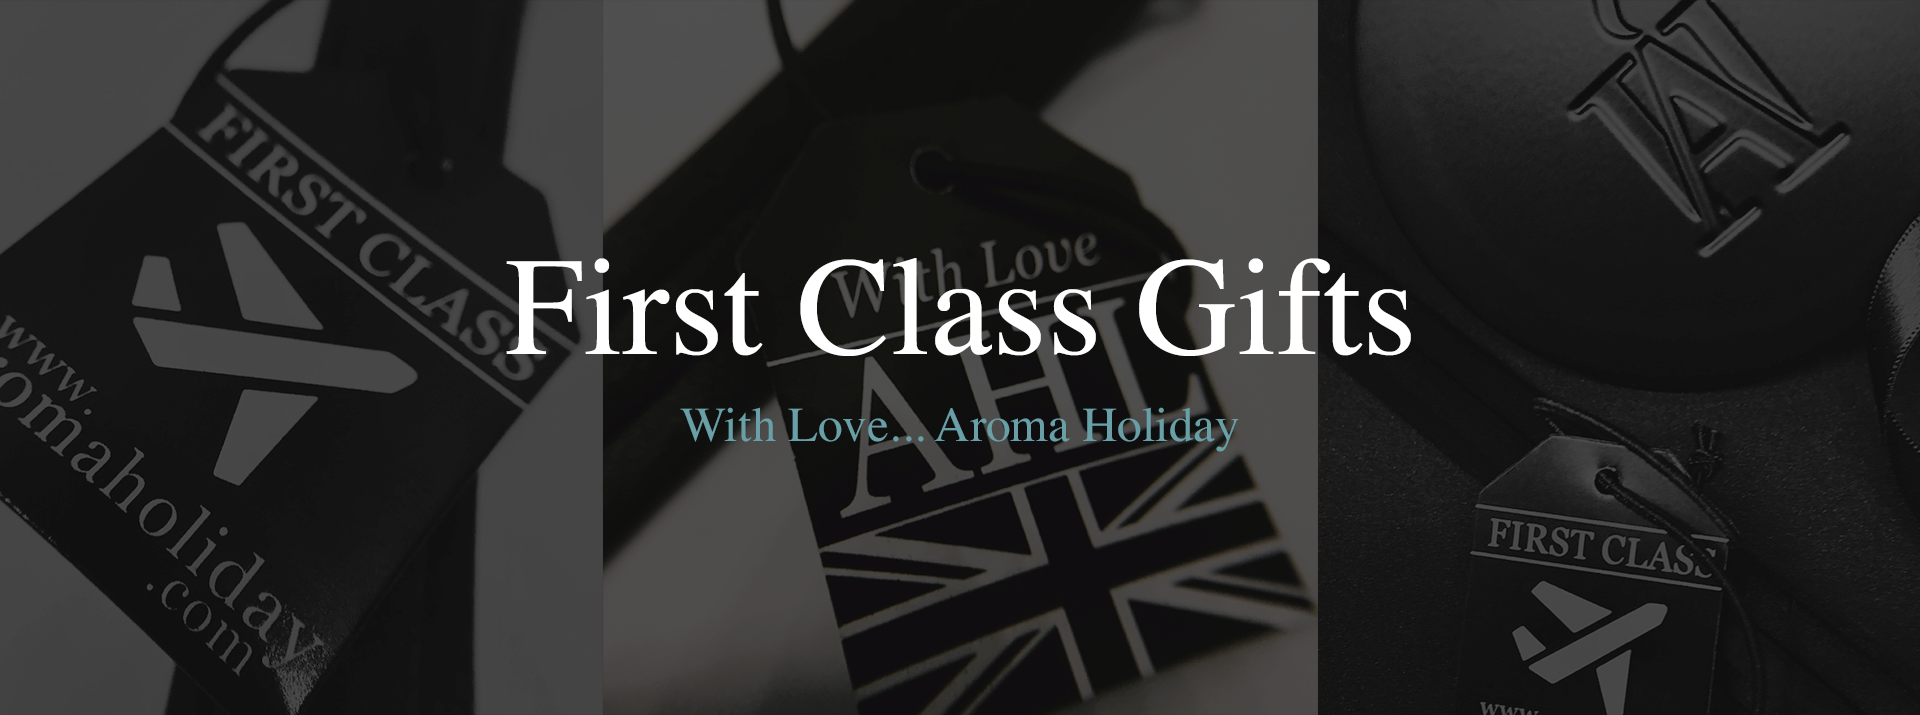 First Class Gifts by Aroma Holiday